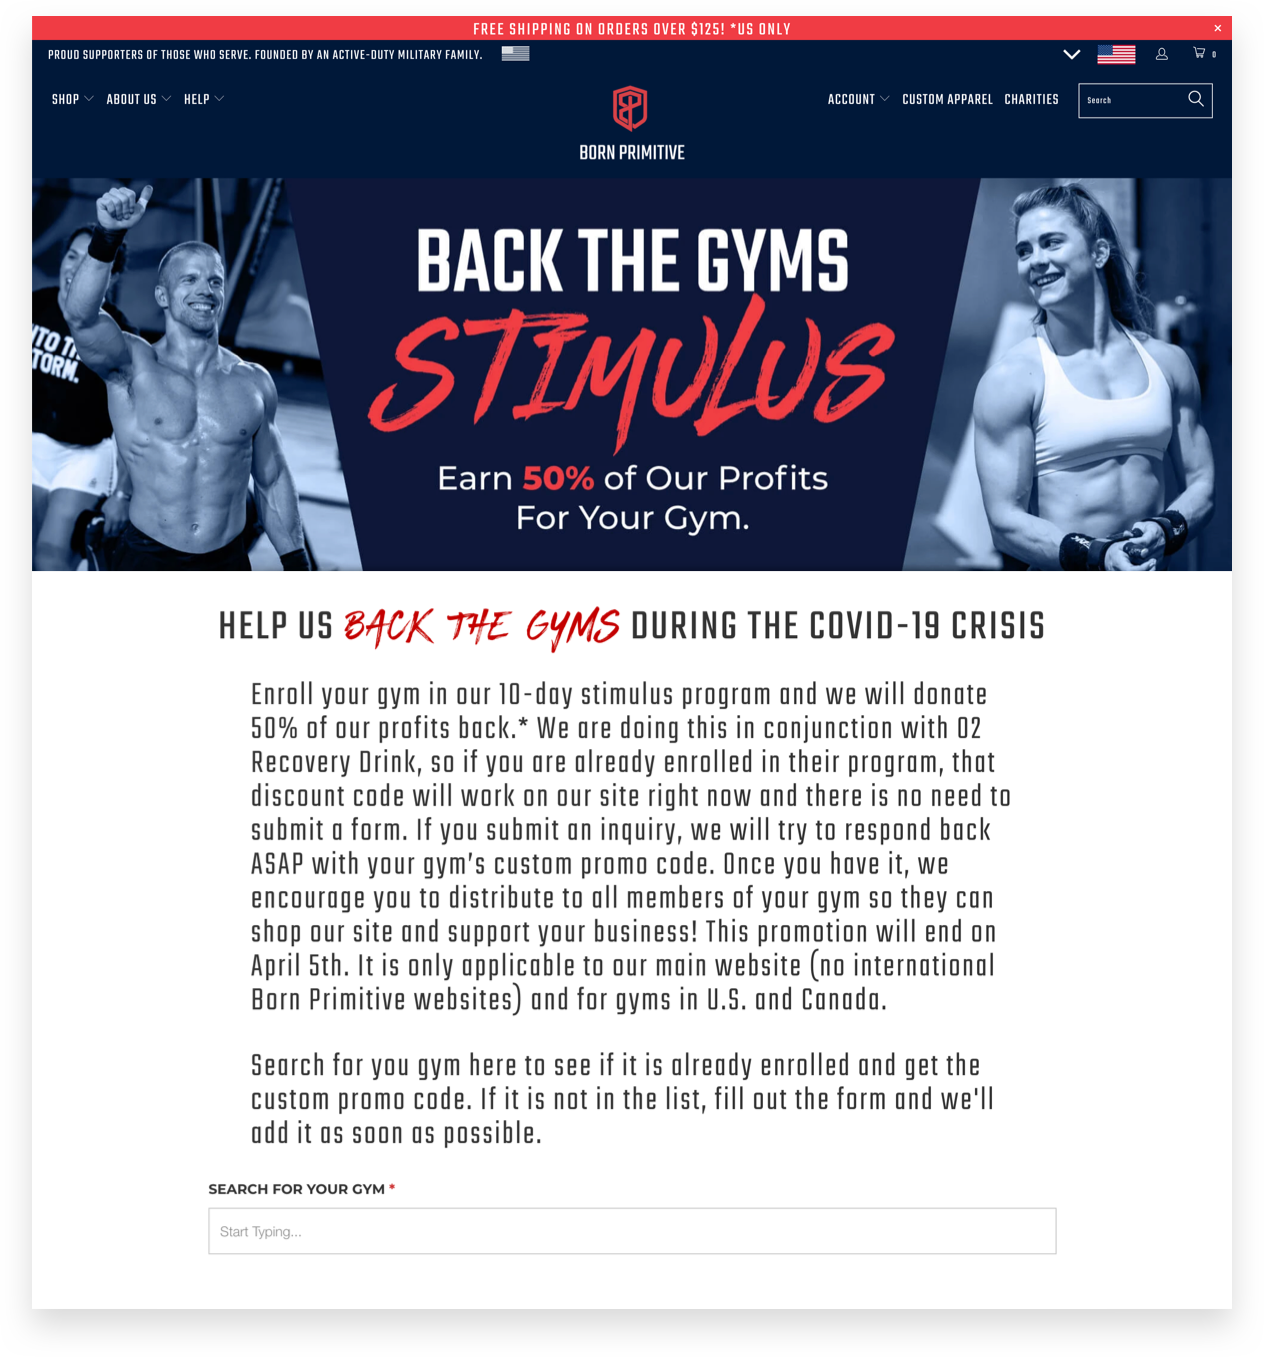 Born Primitive Back the Gyms Stimulus